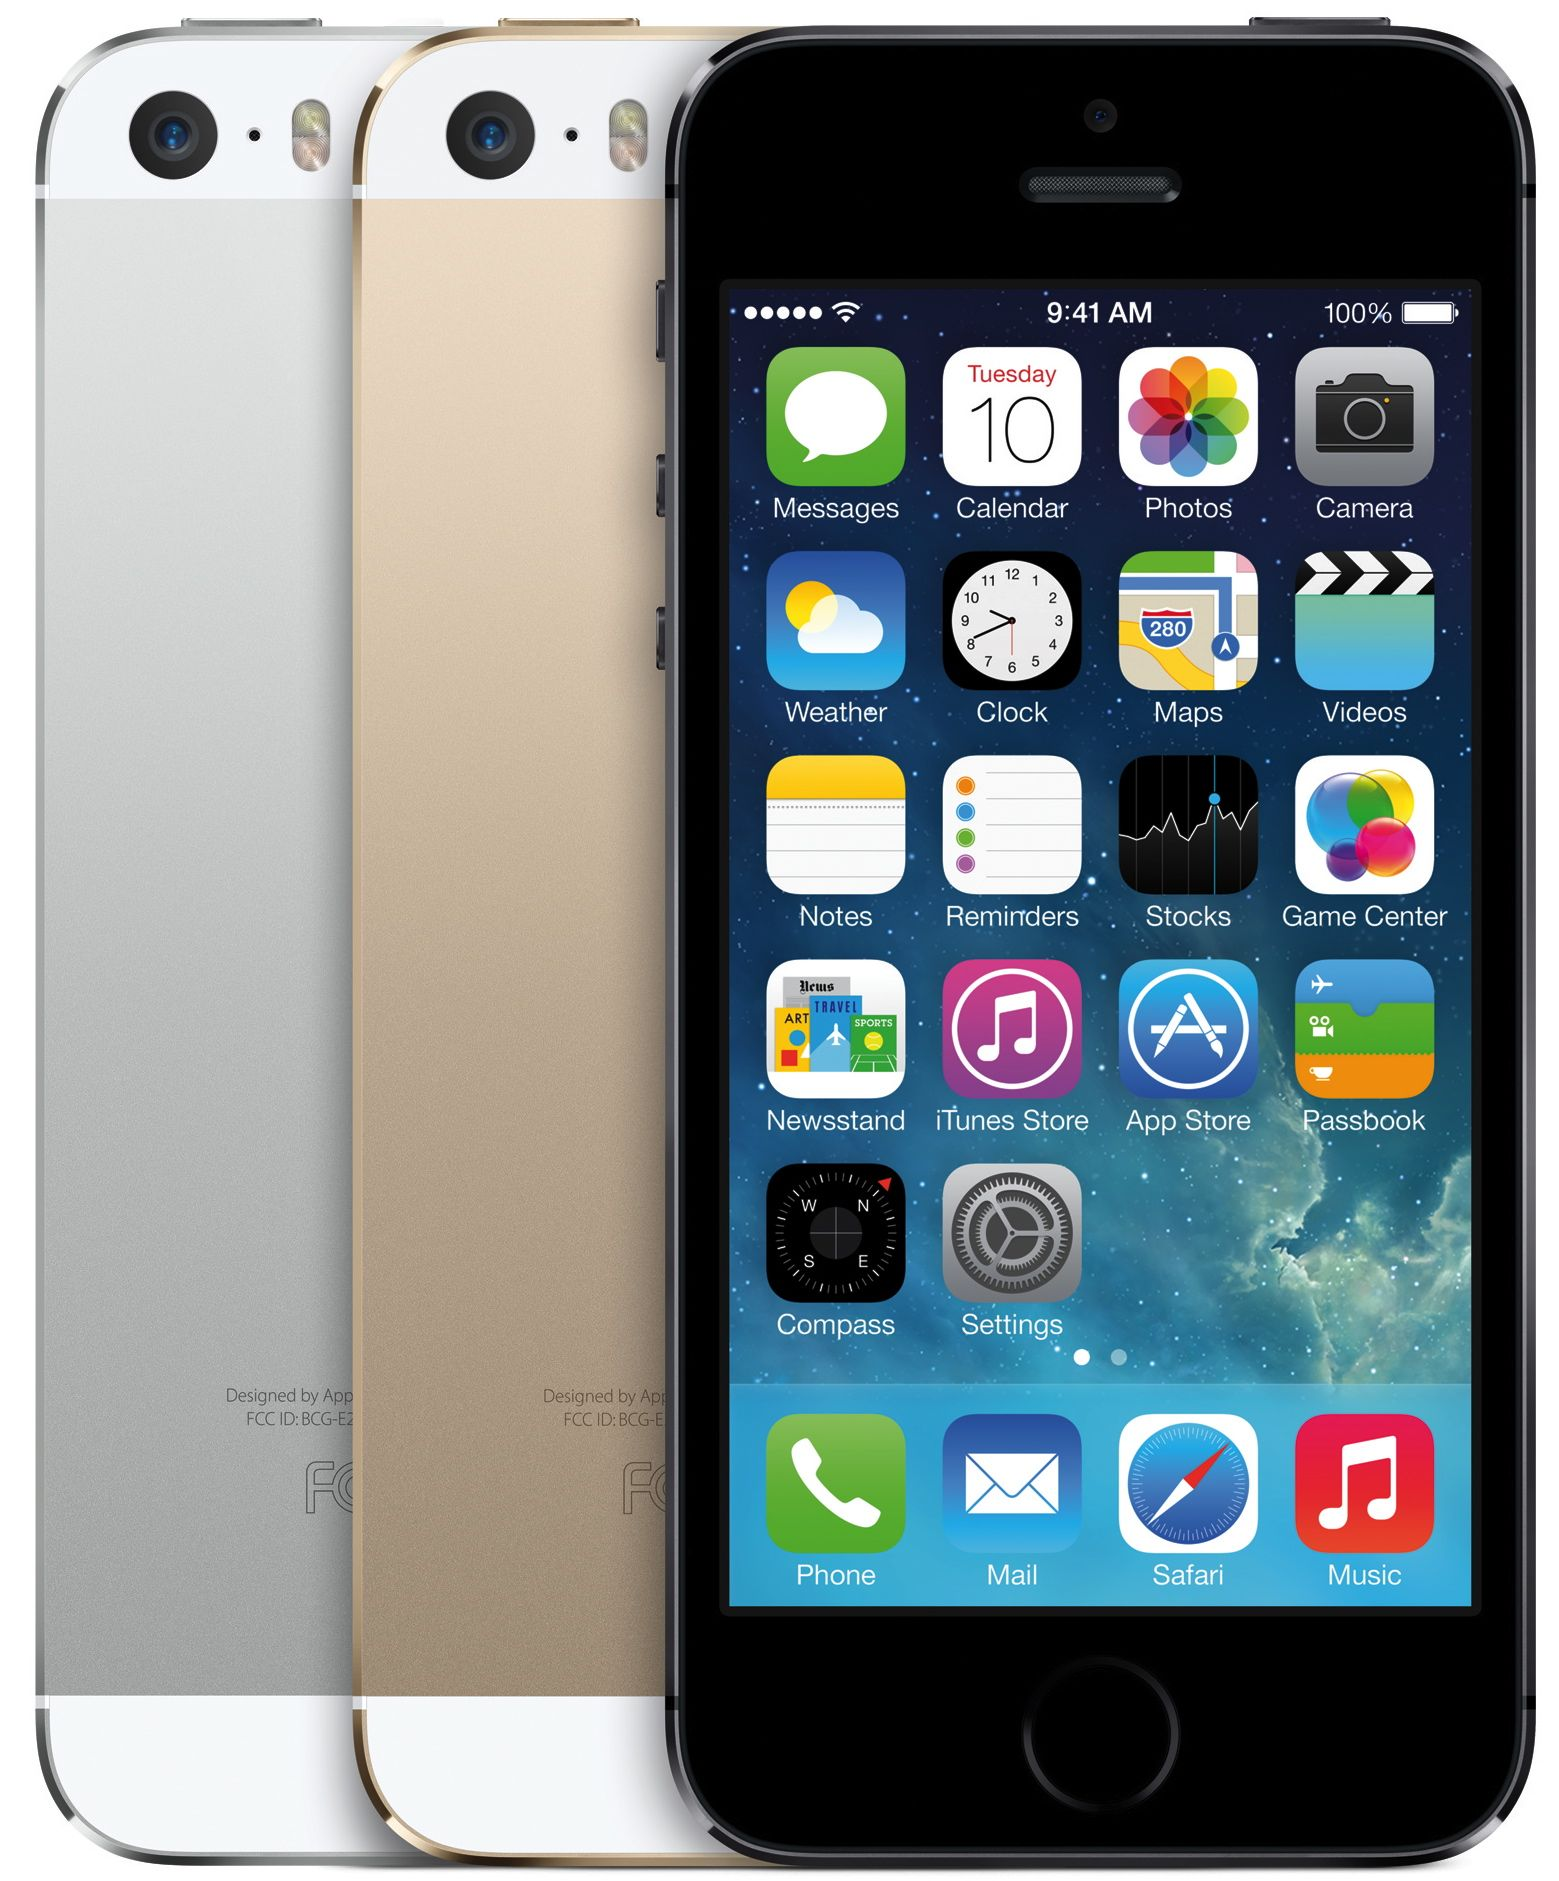 IPHONE 5S RETAIL PRICE AT&T